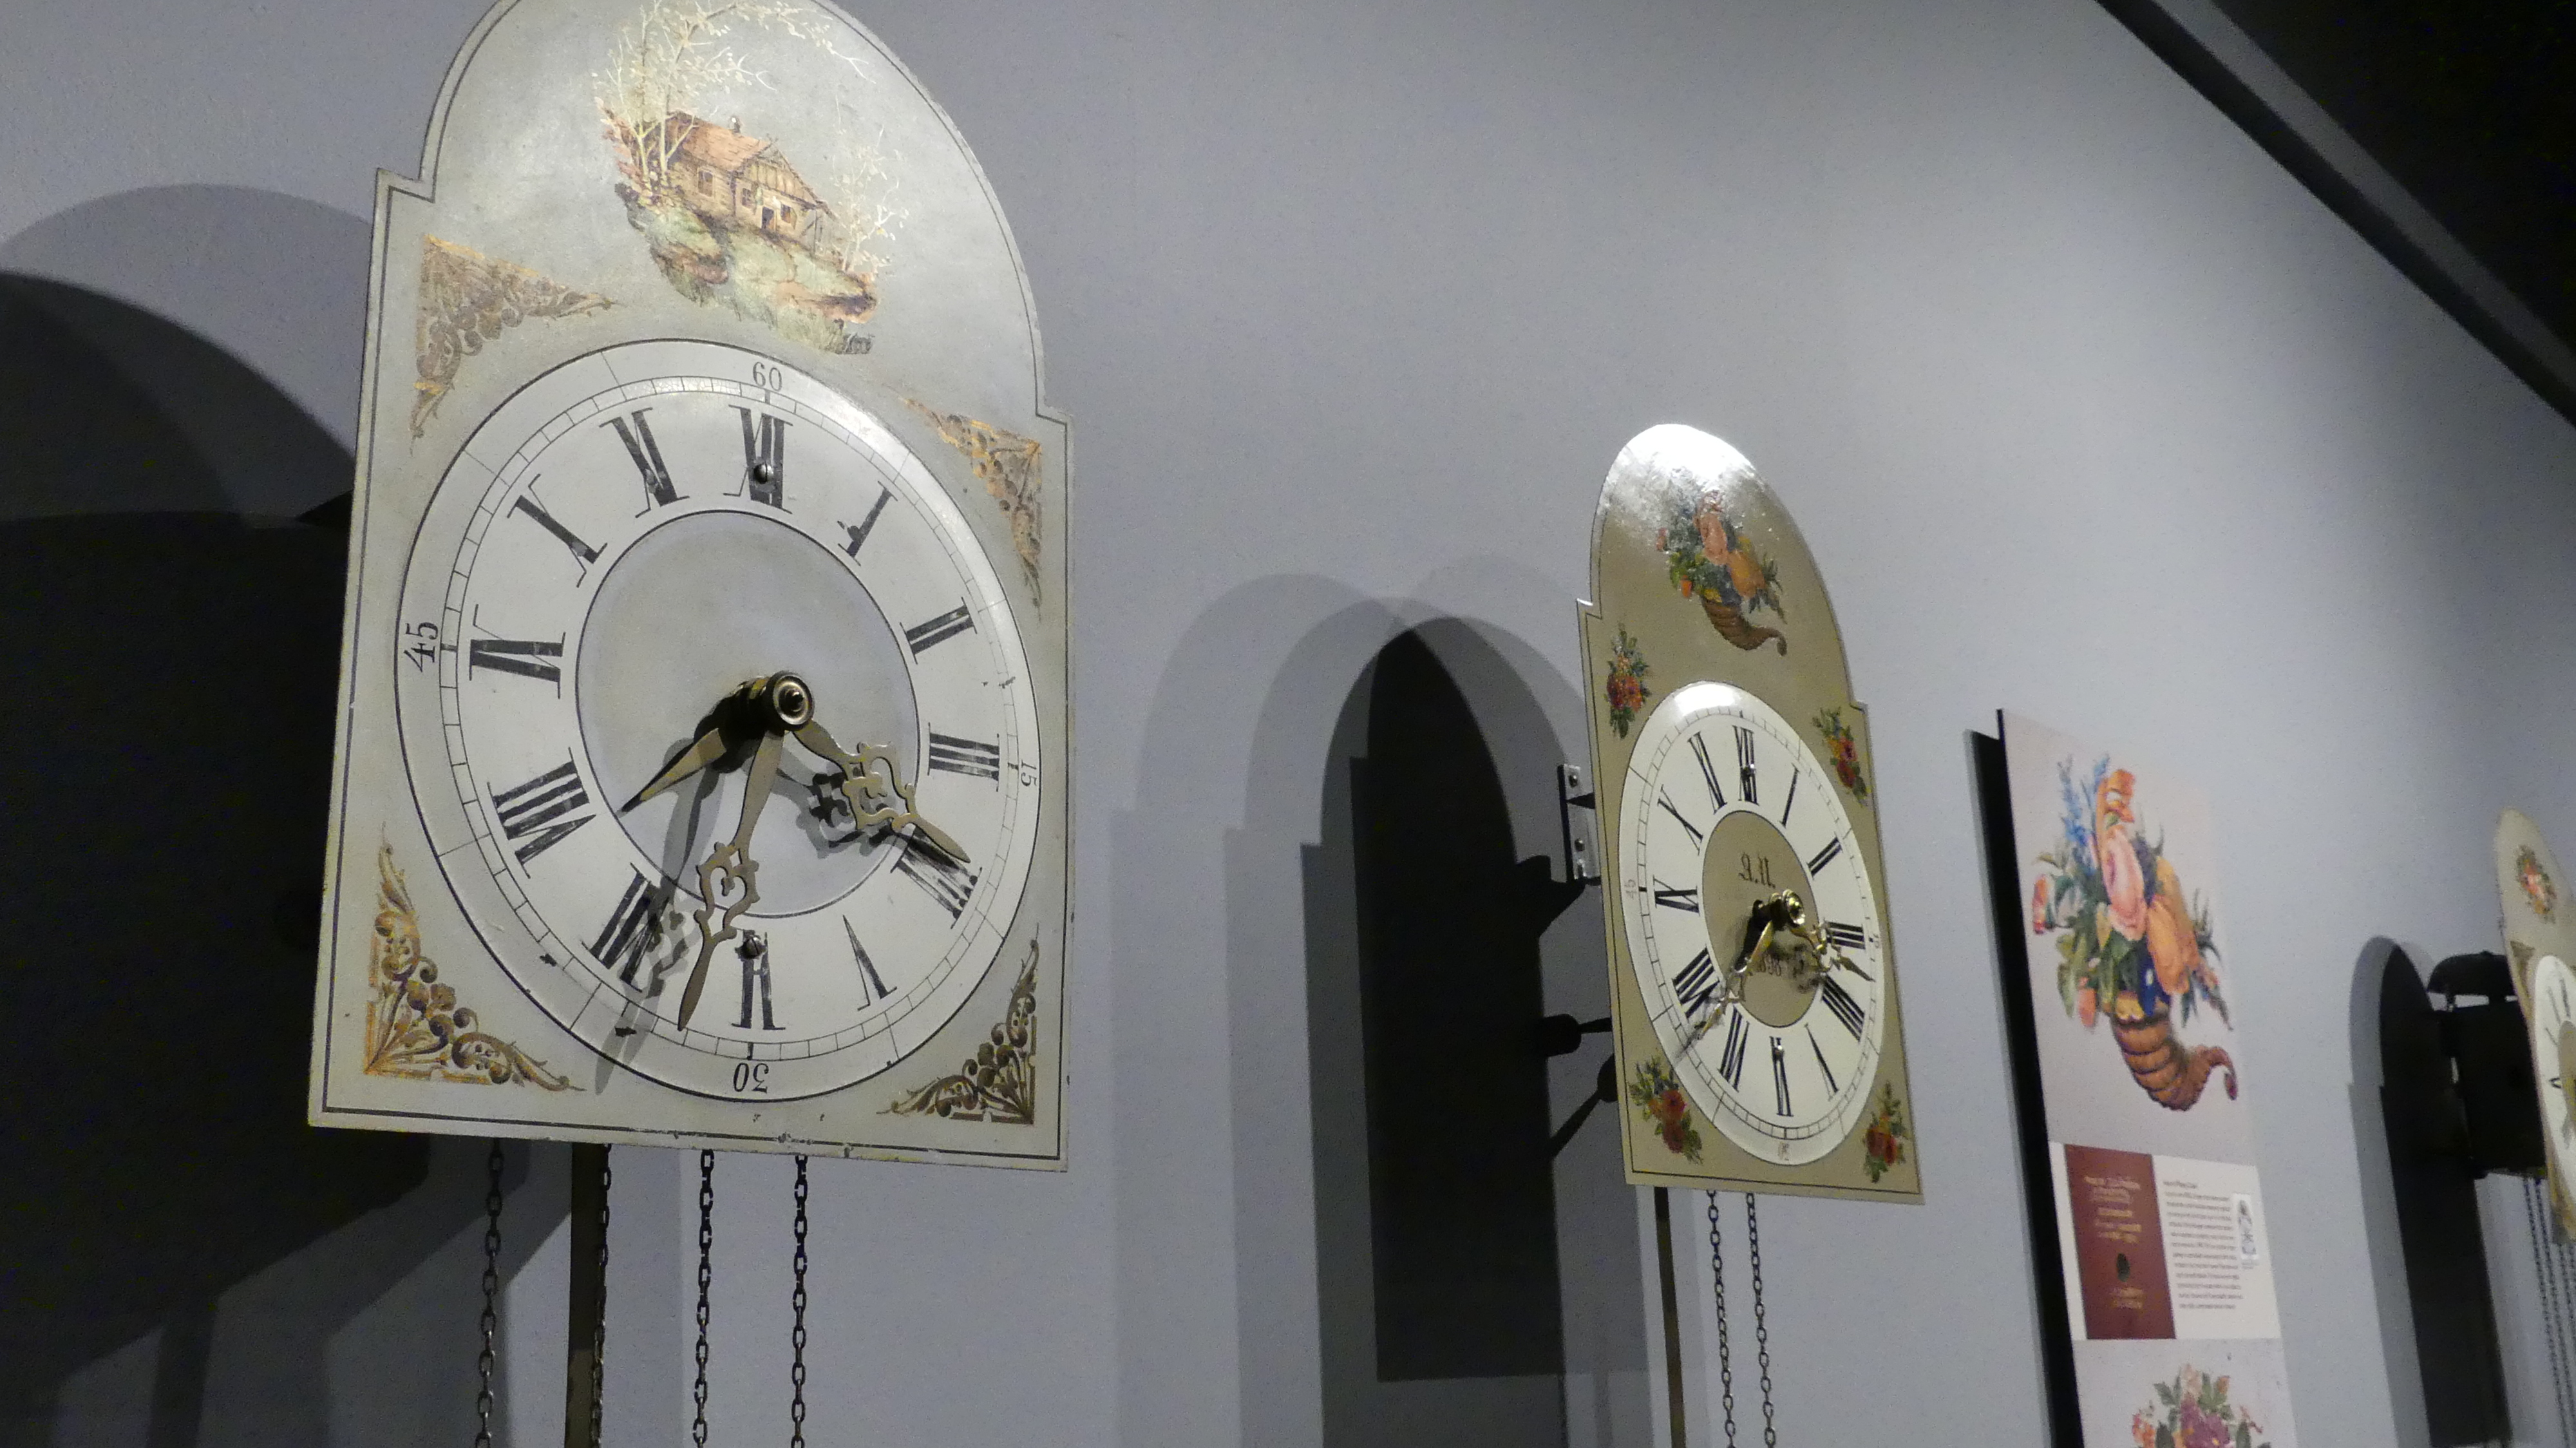 Clocks hang in an exhibit in Steinbach's Mennonite Heritage Village, silent for now. (Aidan Geary/CBC)